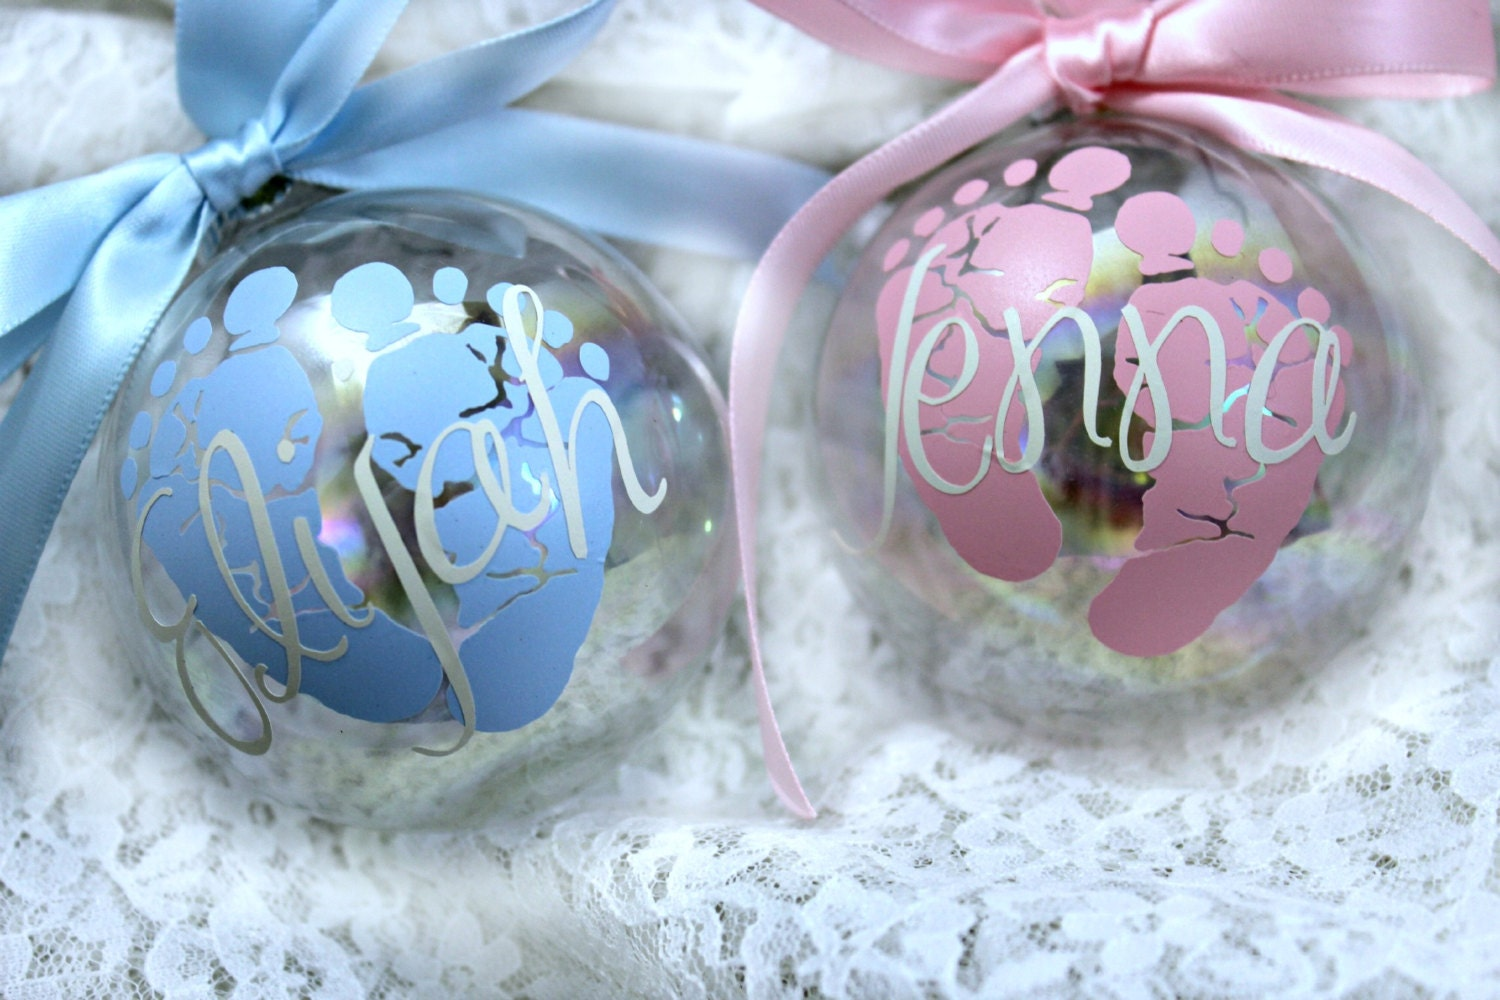 Baby 39 s first christmas ornament personalized custom for Personalized christmas photo ornaments